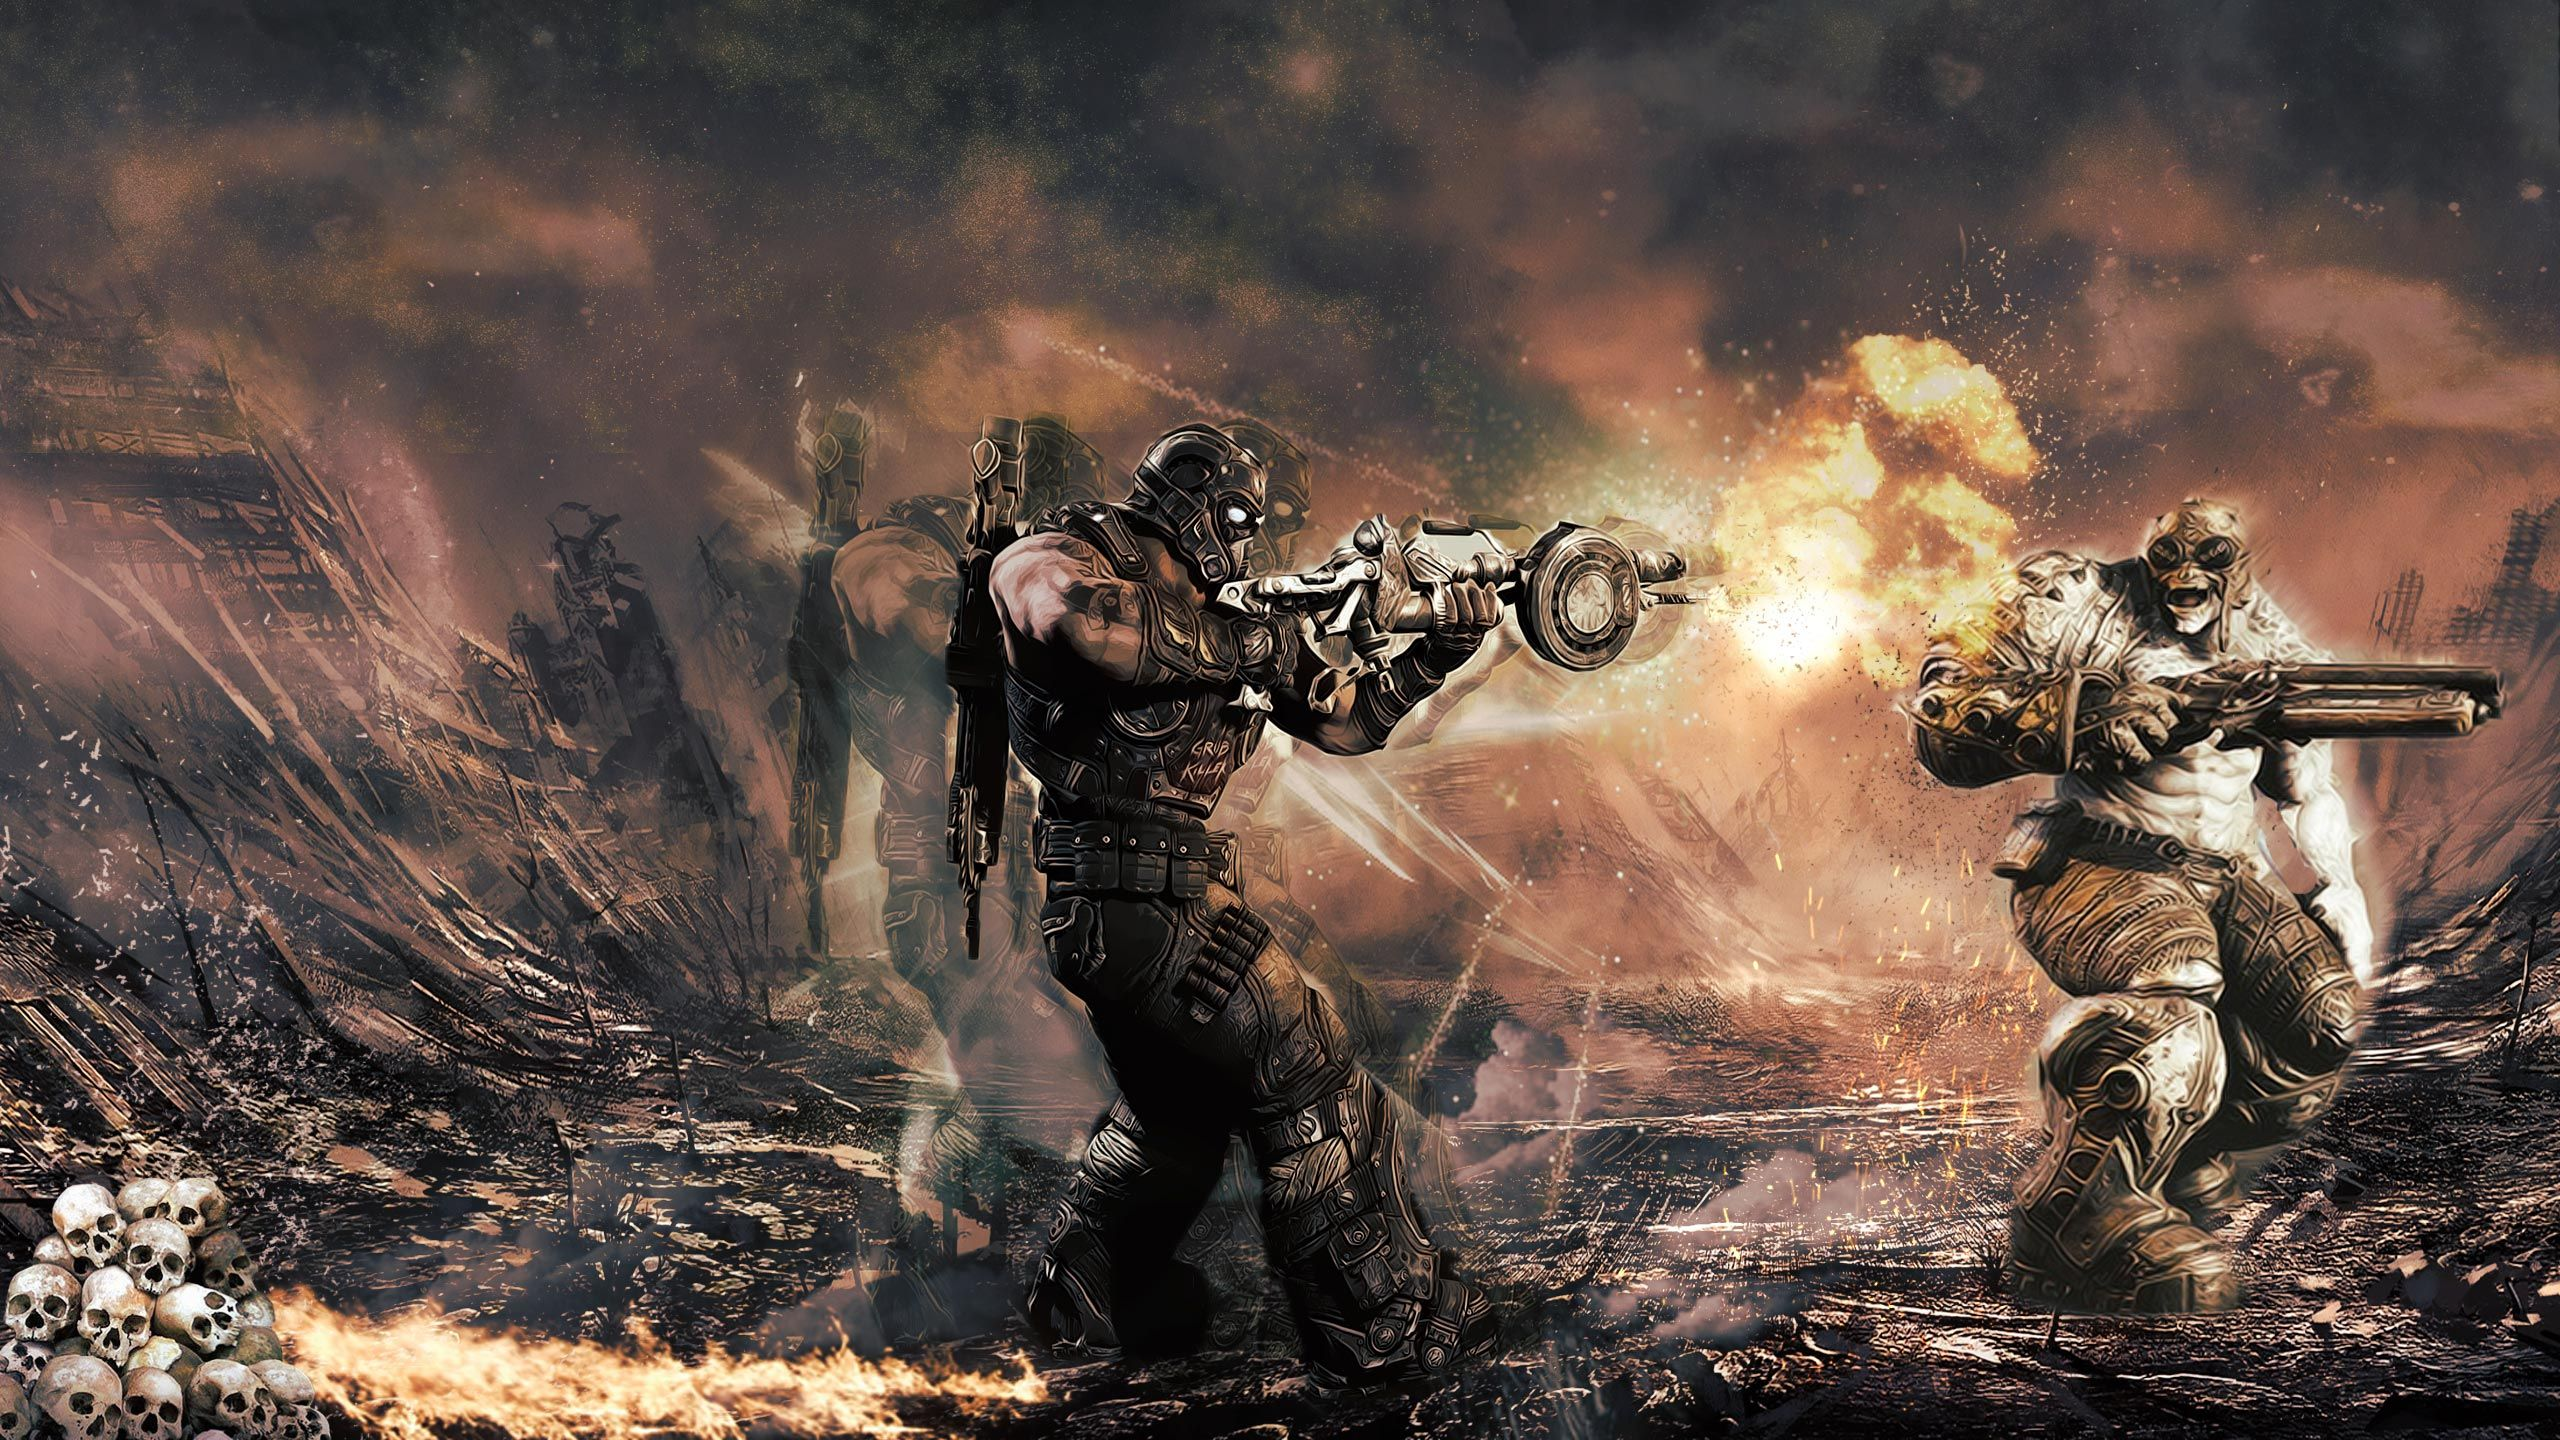 K Ultra Hd Gears Of War Wallpapers Hd Desktop Backgrounds 1920